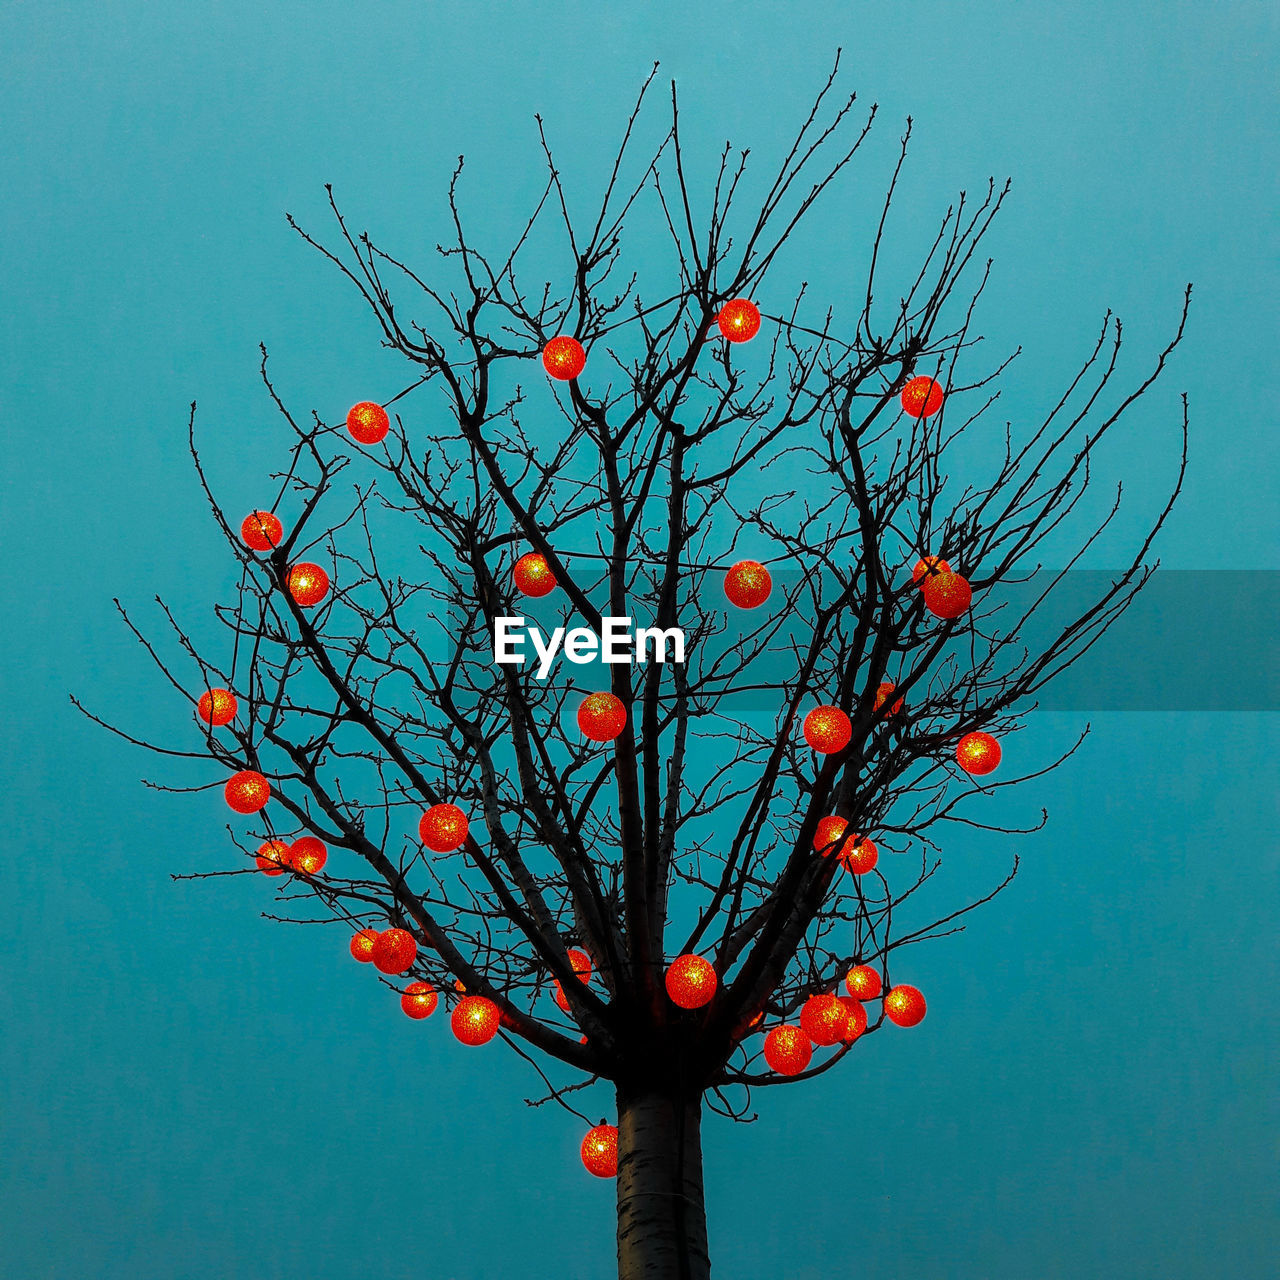 low angle view, no people, tree, outdoors, day, bare tree, fruit, branch, red, sky, clear sky, nature, close-up